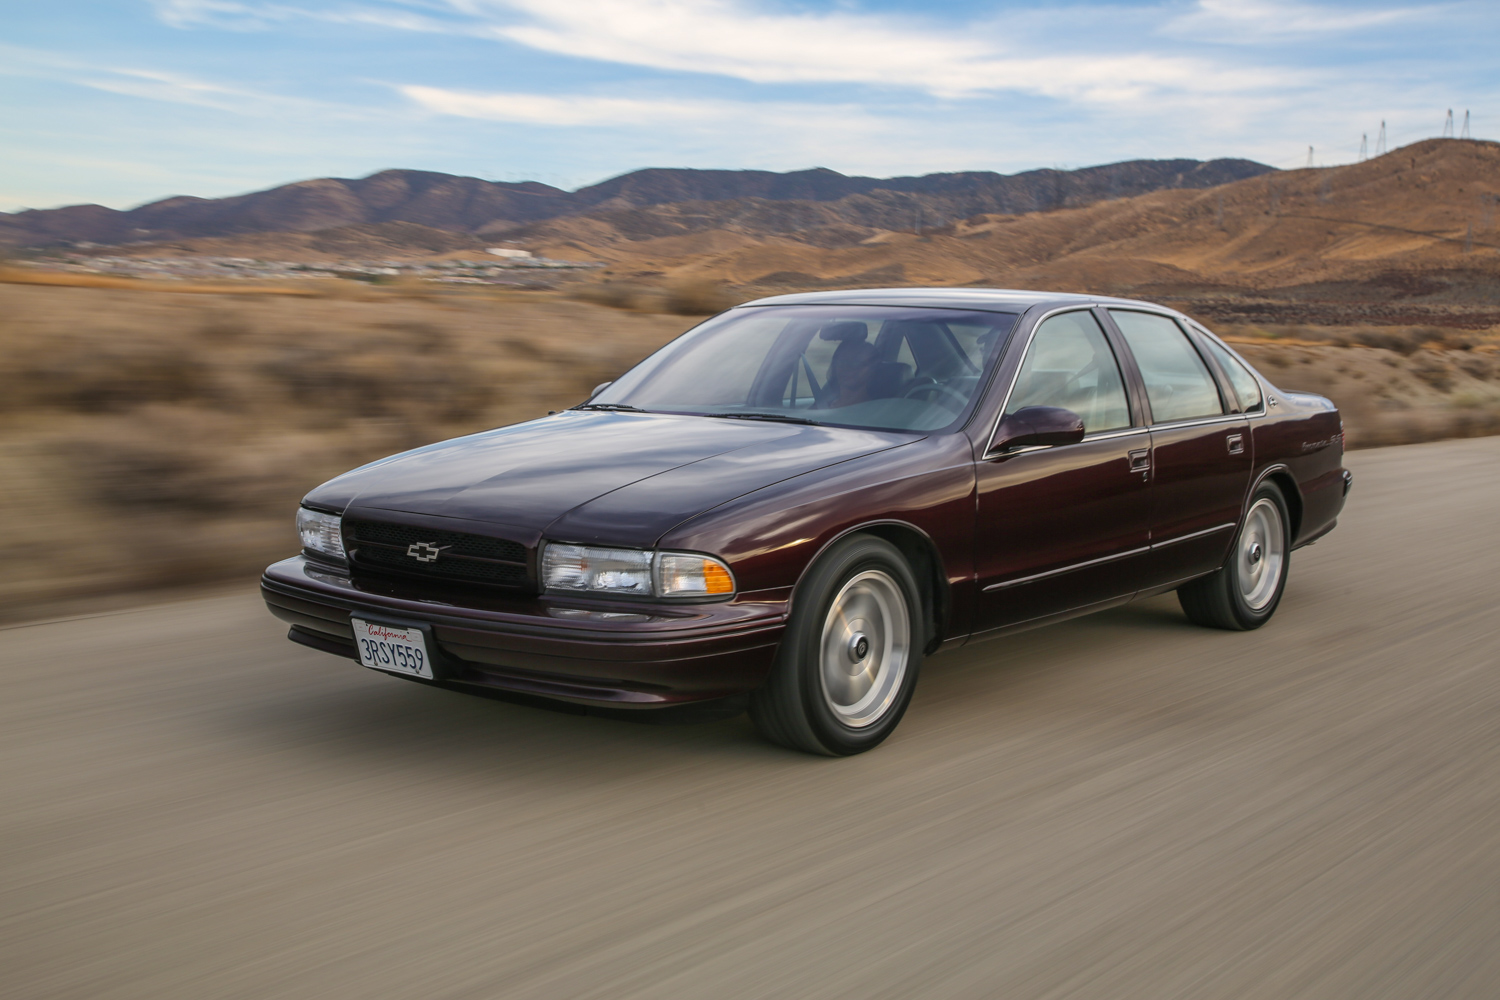 1996 Chevrolet Impala SS driving 3/4 front